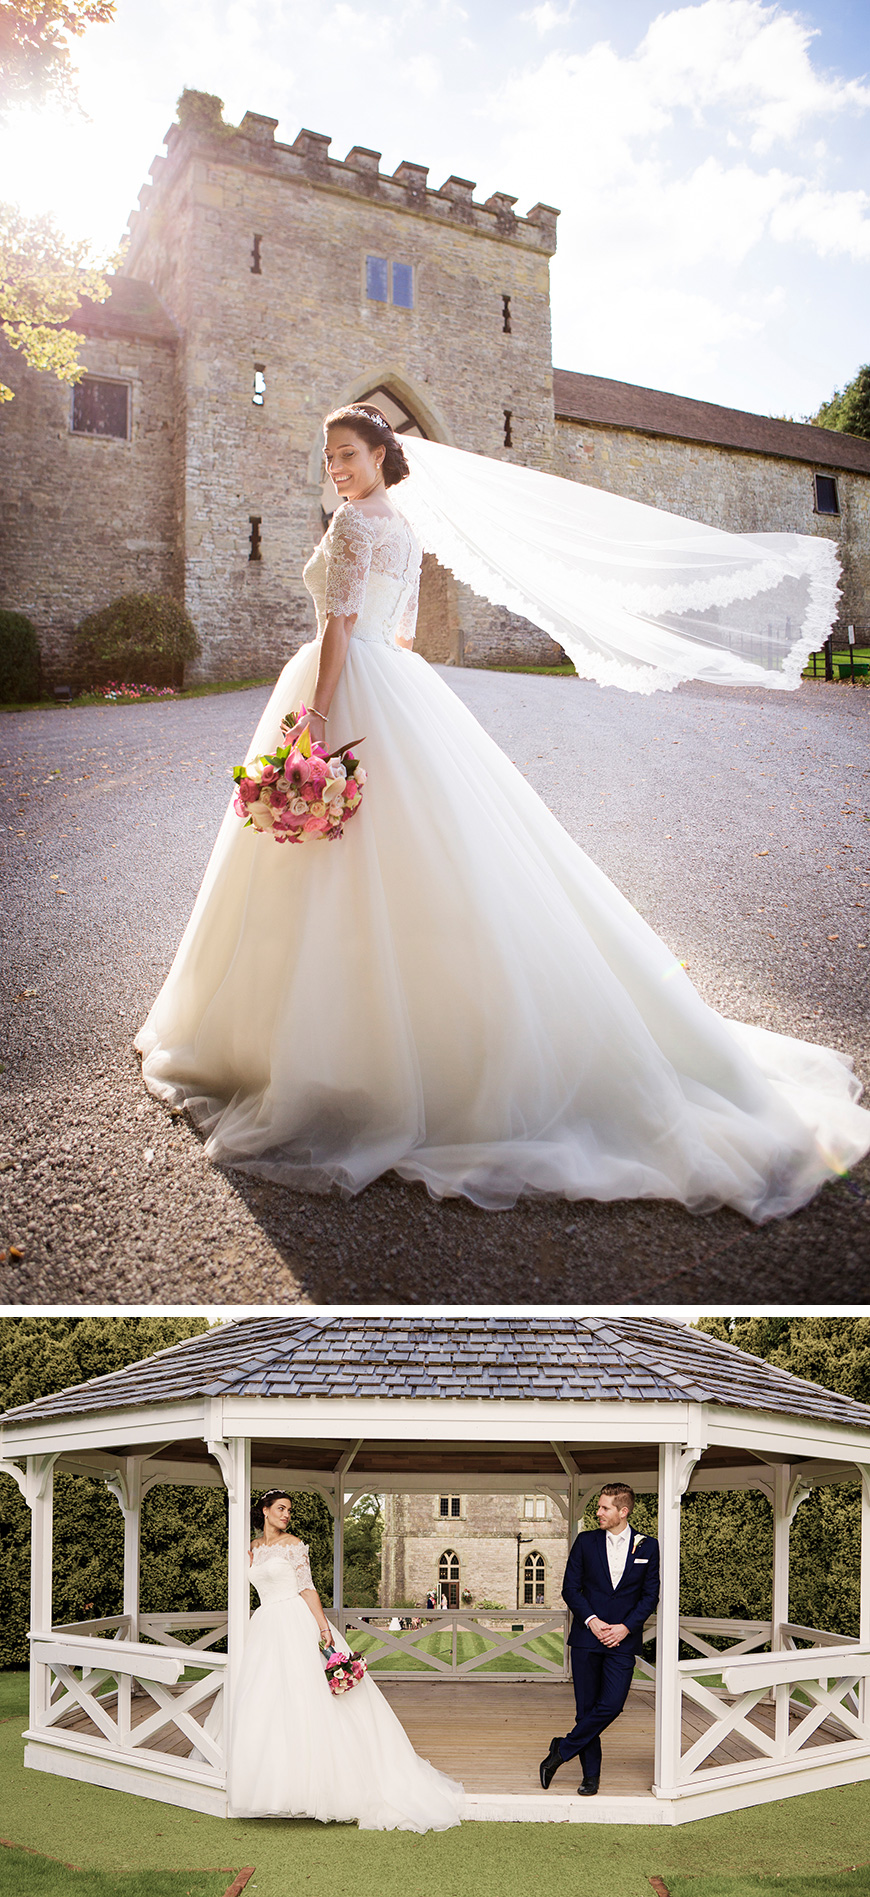 An Autumnal Affair at Clearwell Castle - The Outfits | CHWV